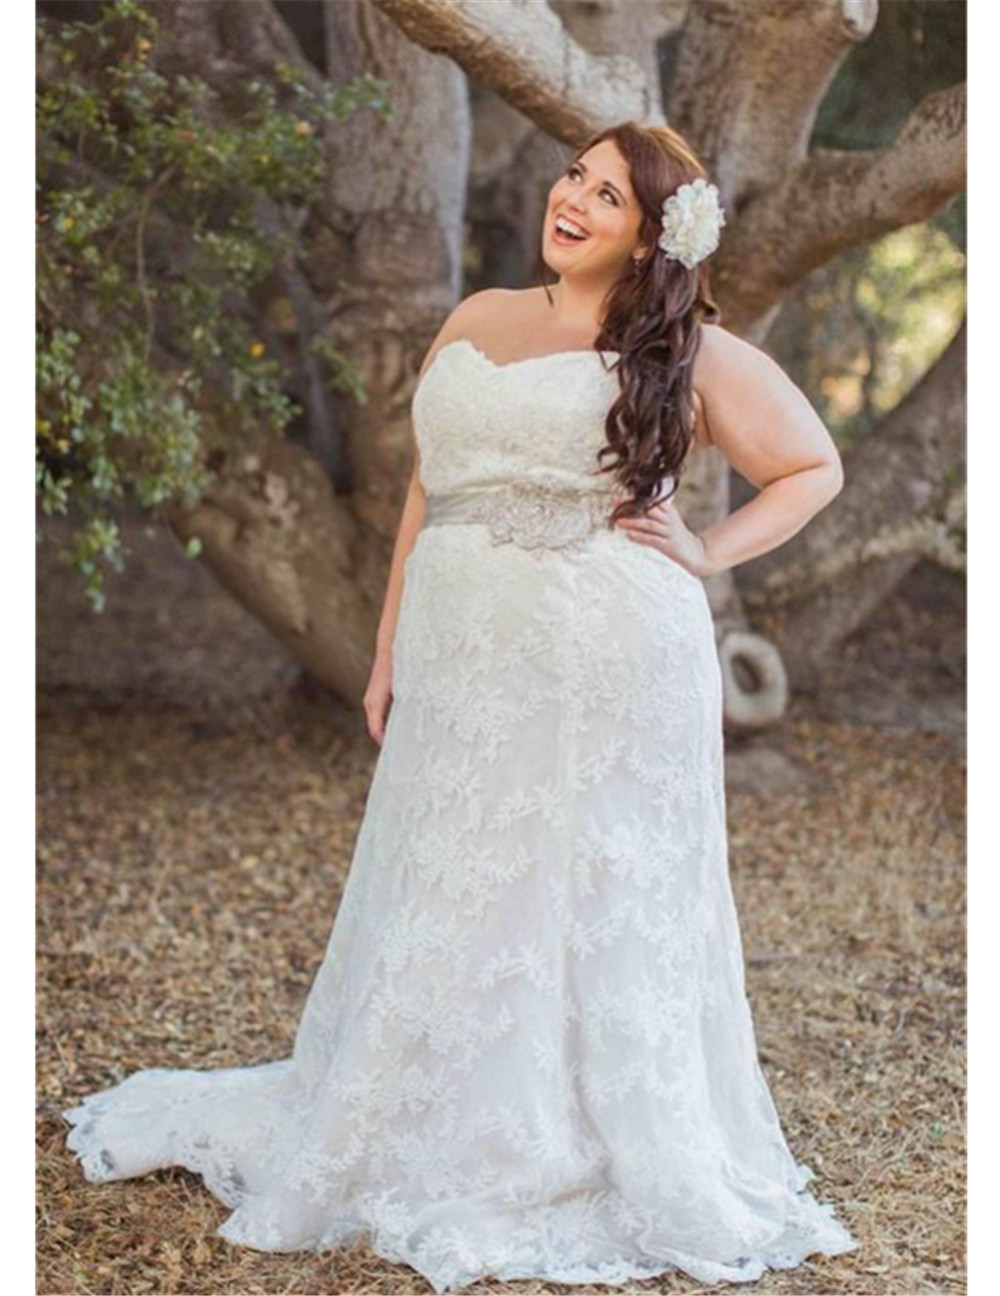 New Strapless Lace White Ivory Plus Size Wedding Dress With Sash Bridal Gown Custom 18 20 22 24 26 In Dresses From Weddings Events On